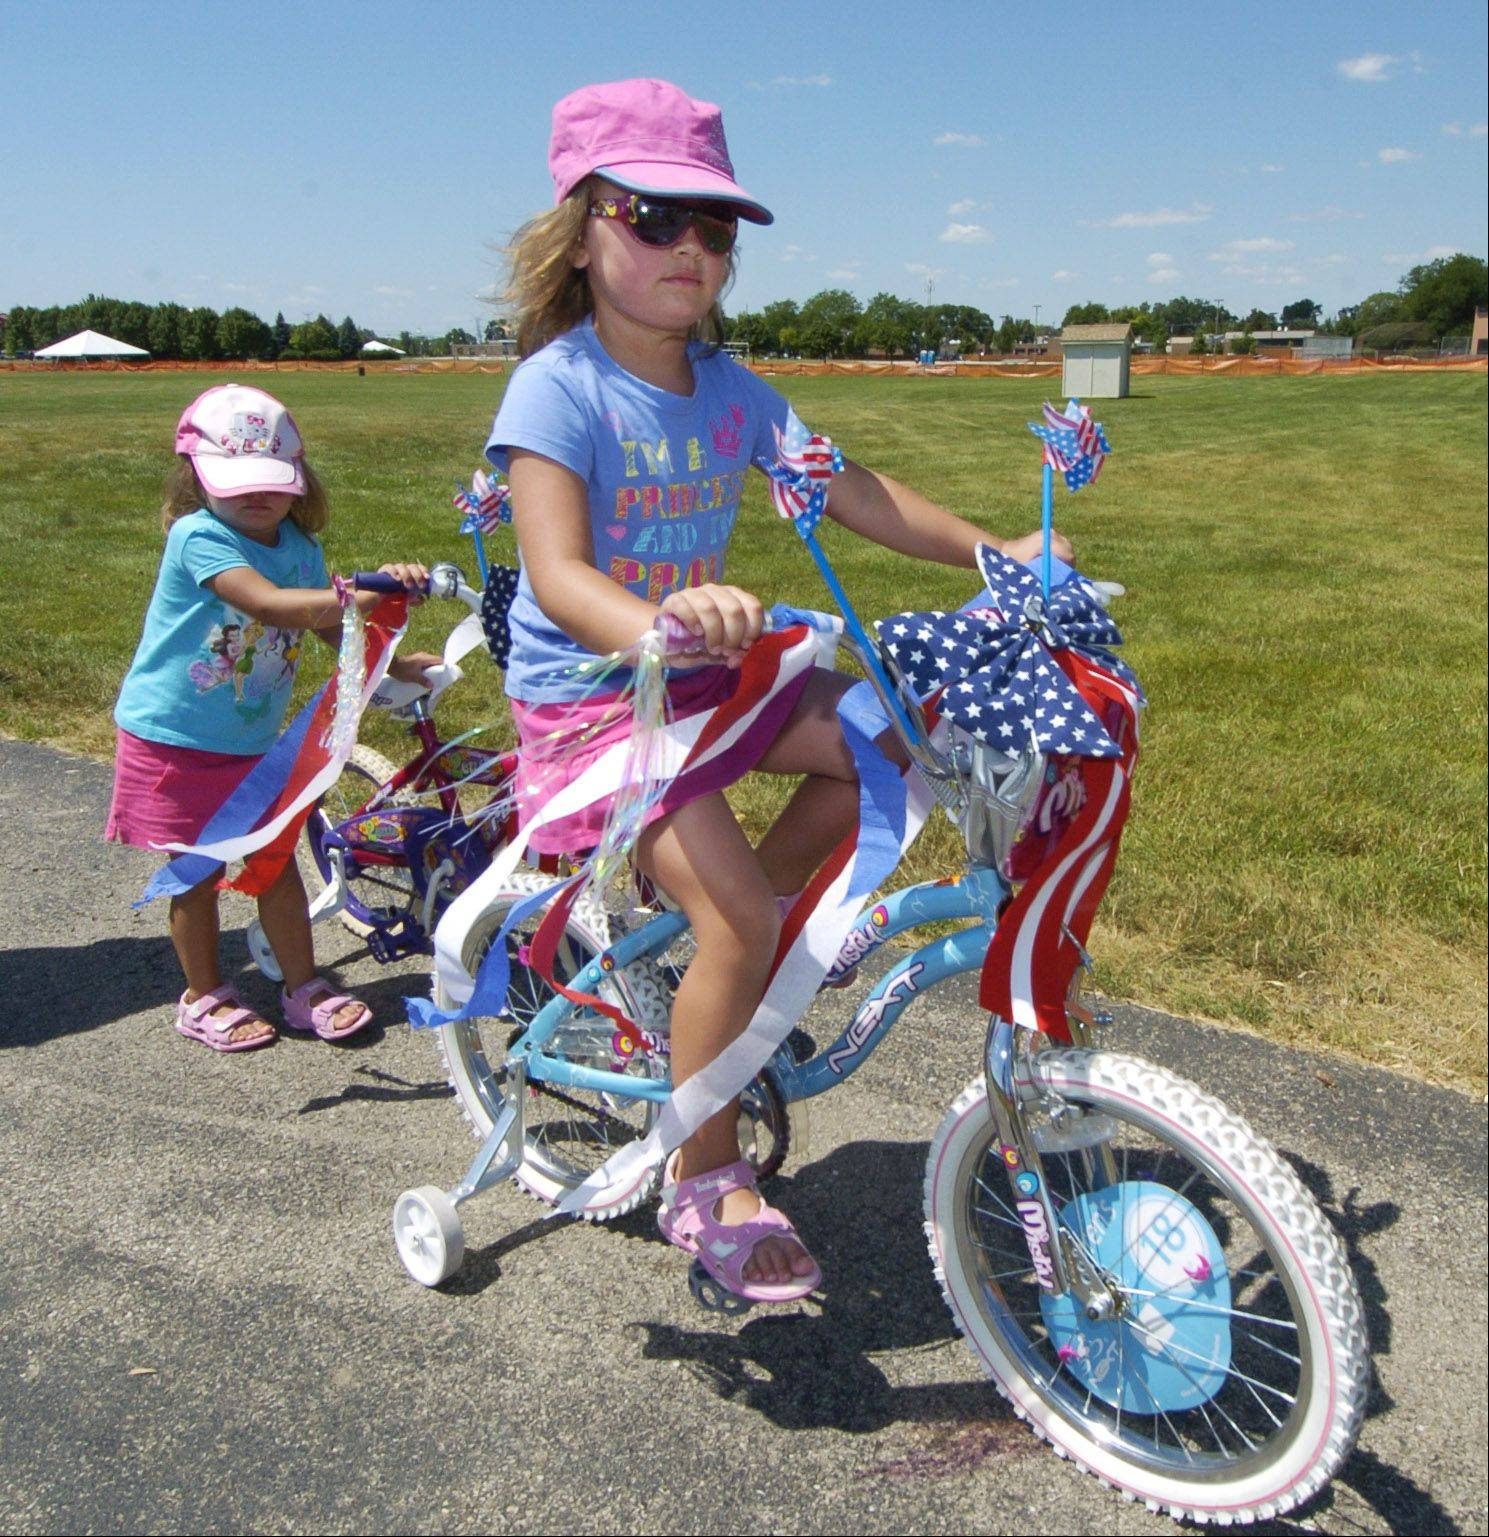 Julia Machowska, 5, rides her bike while her sister, Emily, 3, pushes hers, while participating in the Sis Boom Bike and Pet Parade during the Wheeling Park District 50th anniversary/Independence Day Celebration.